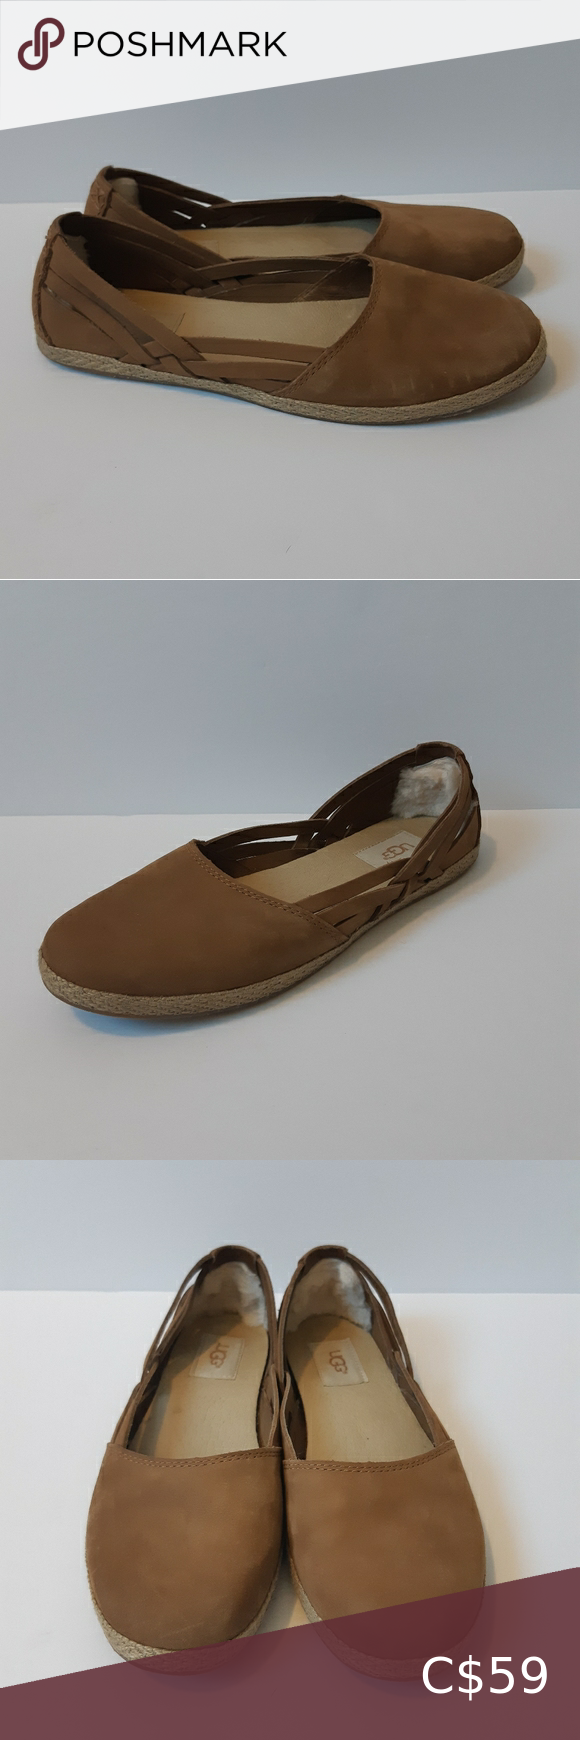 Ugg Nubuck Suede Flats with Woven Sides